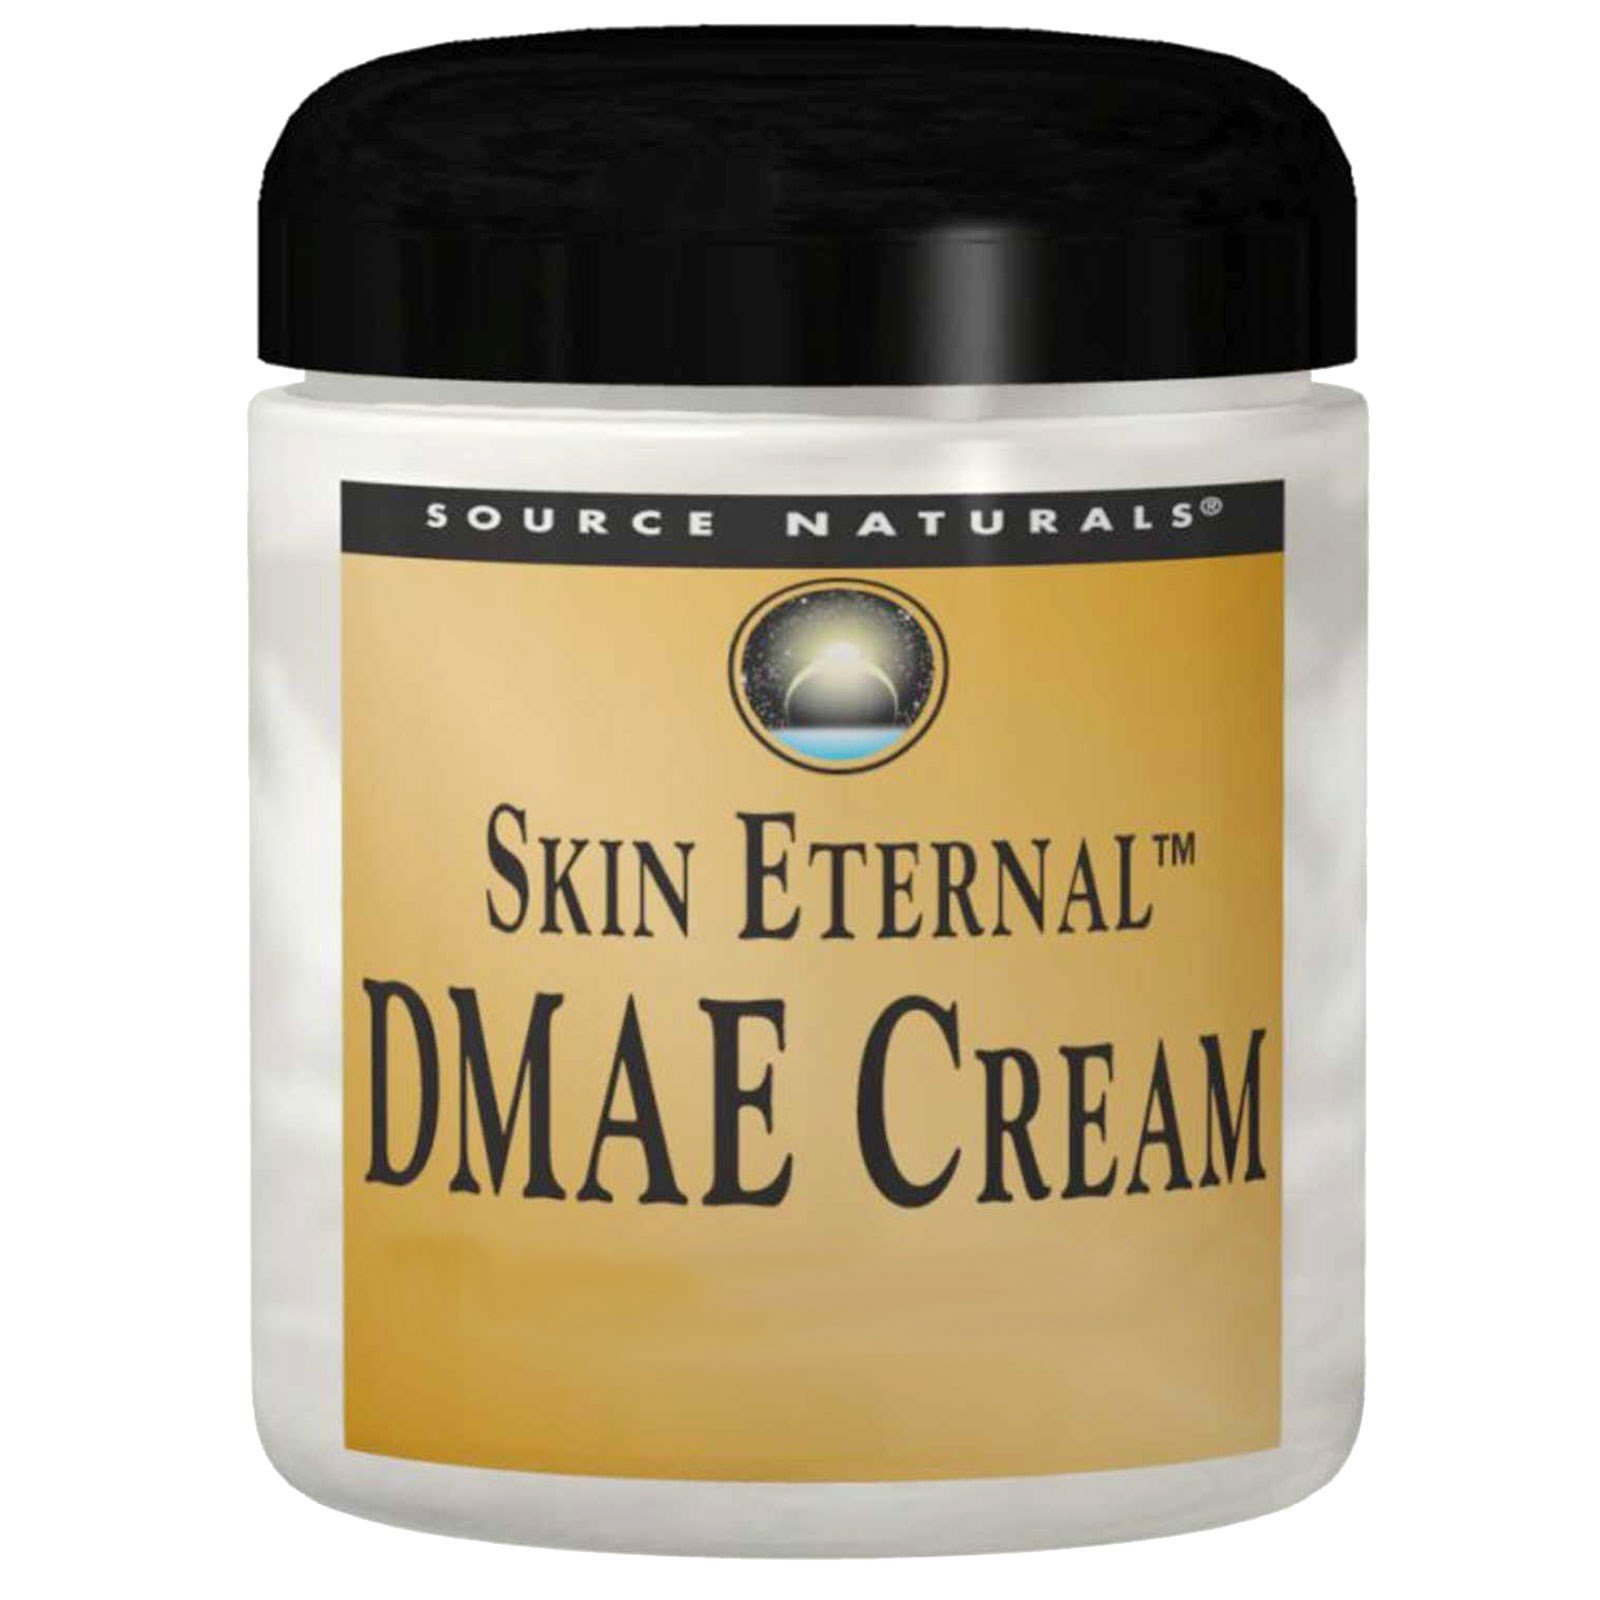 Source Naturals, Skin Eternal DMAE Cream, 2 oz (56.7 g) - 3PC